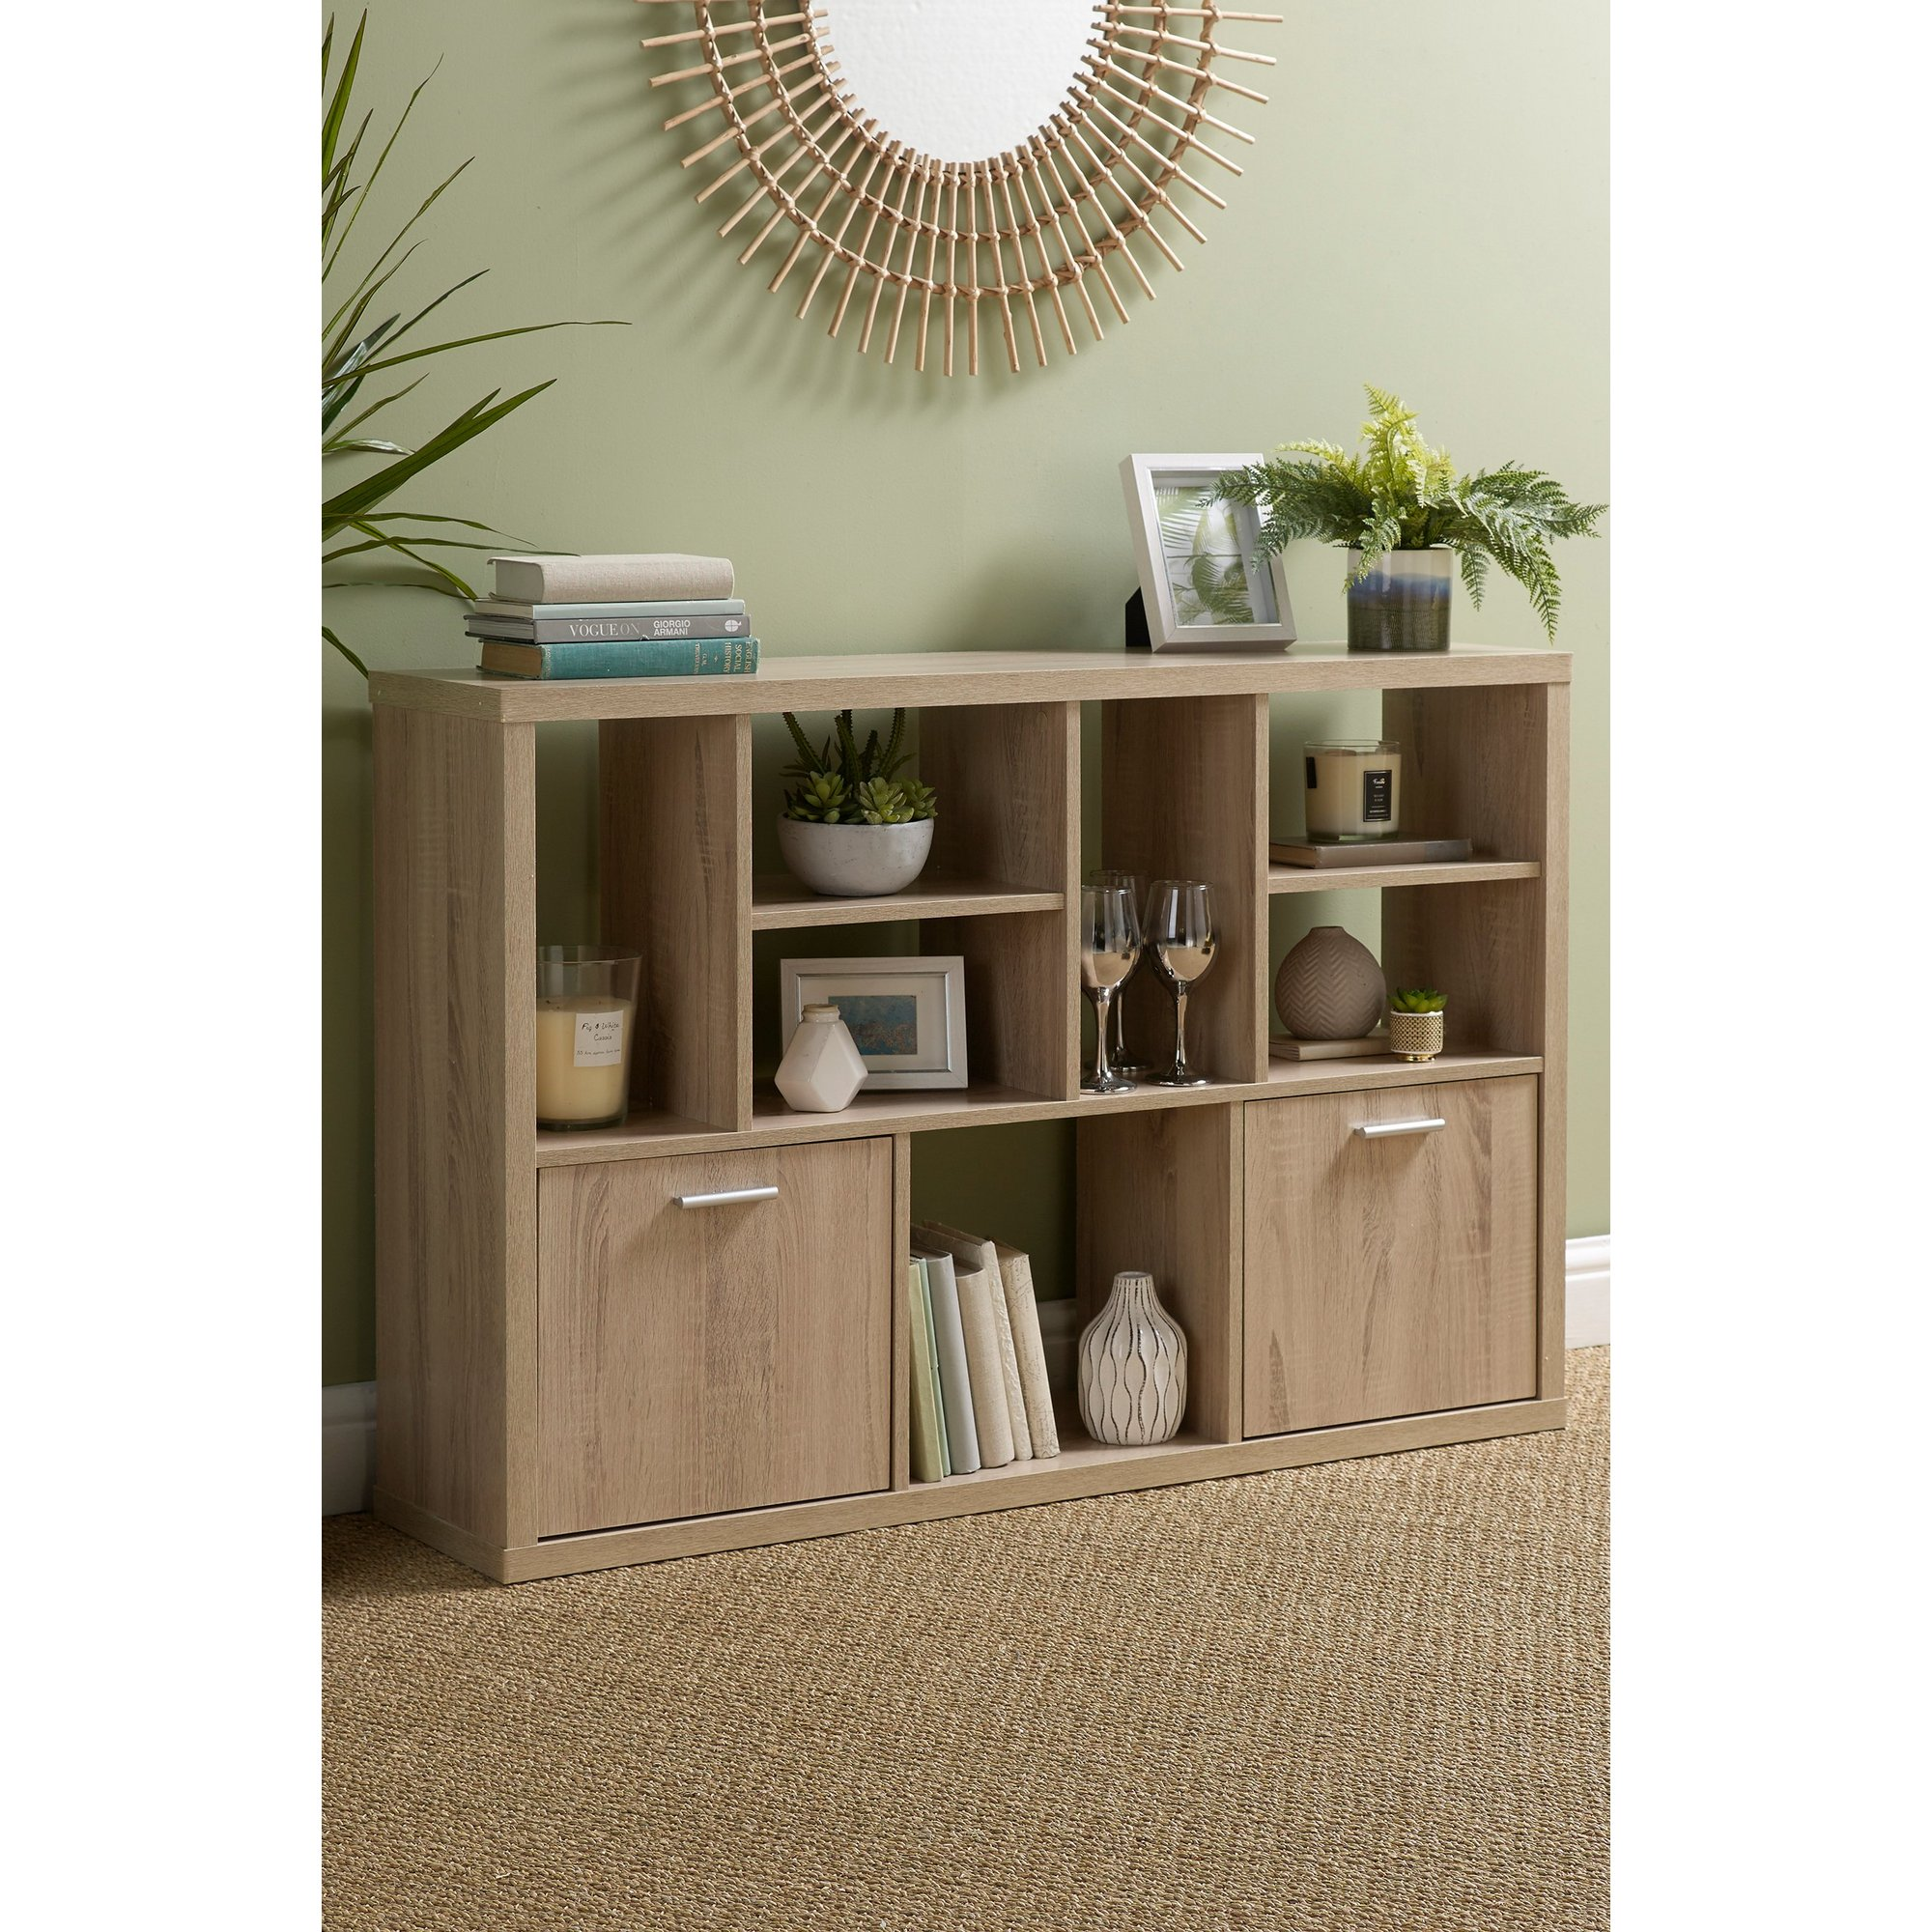 Image of Apollo Sideboard